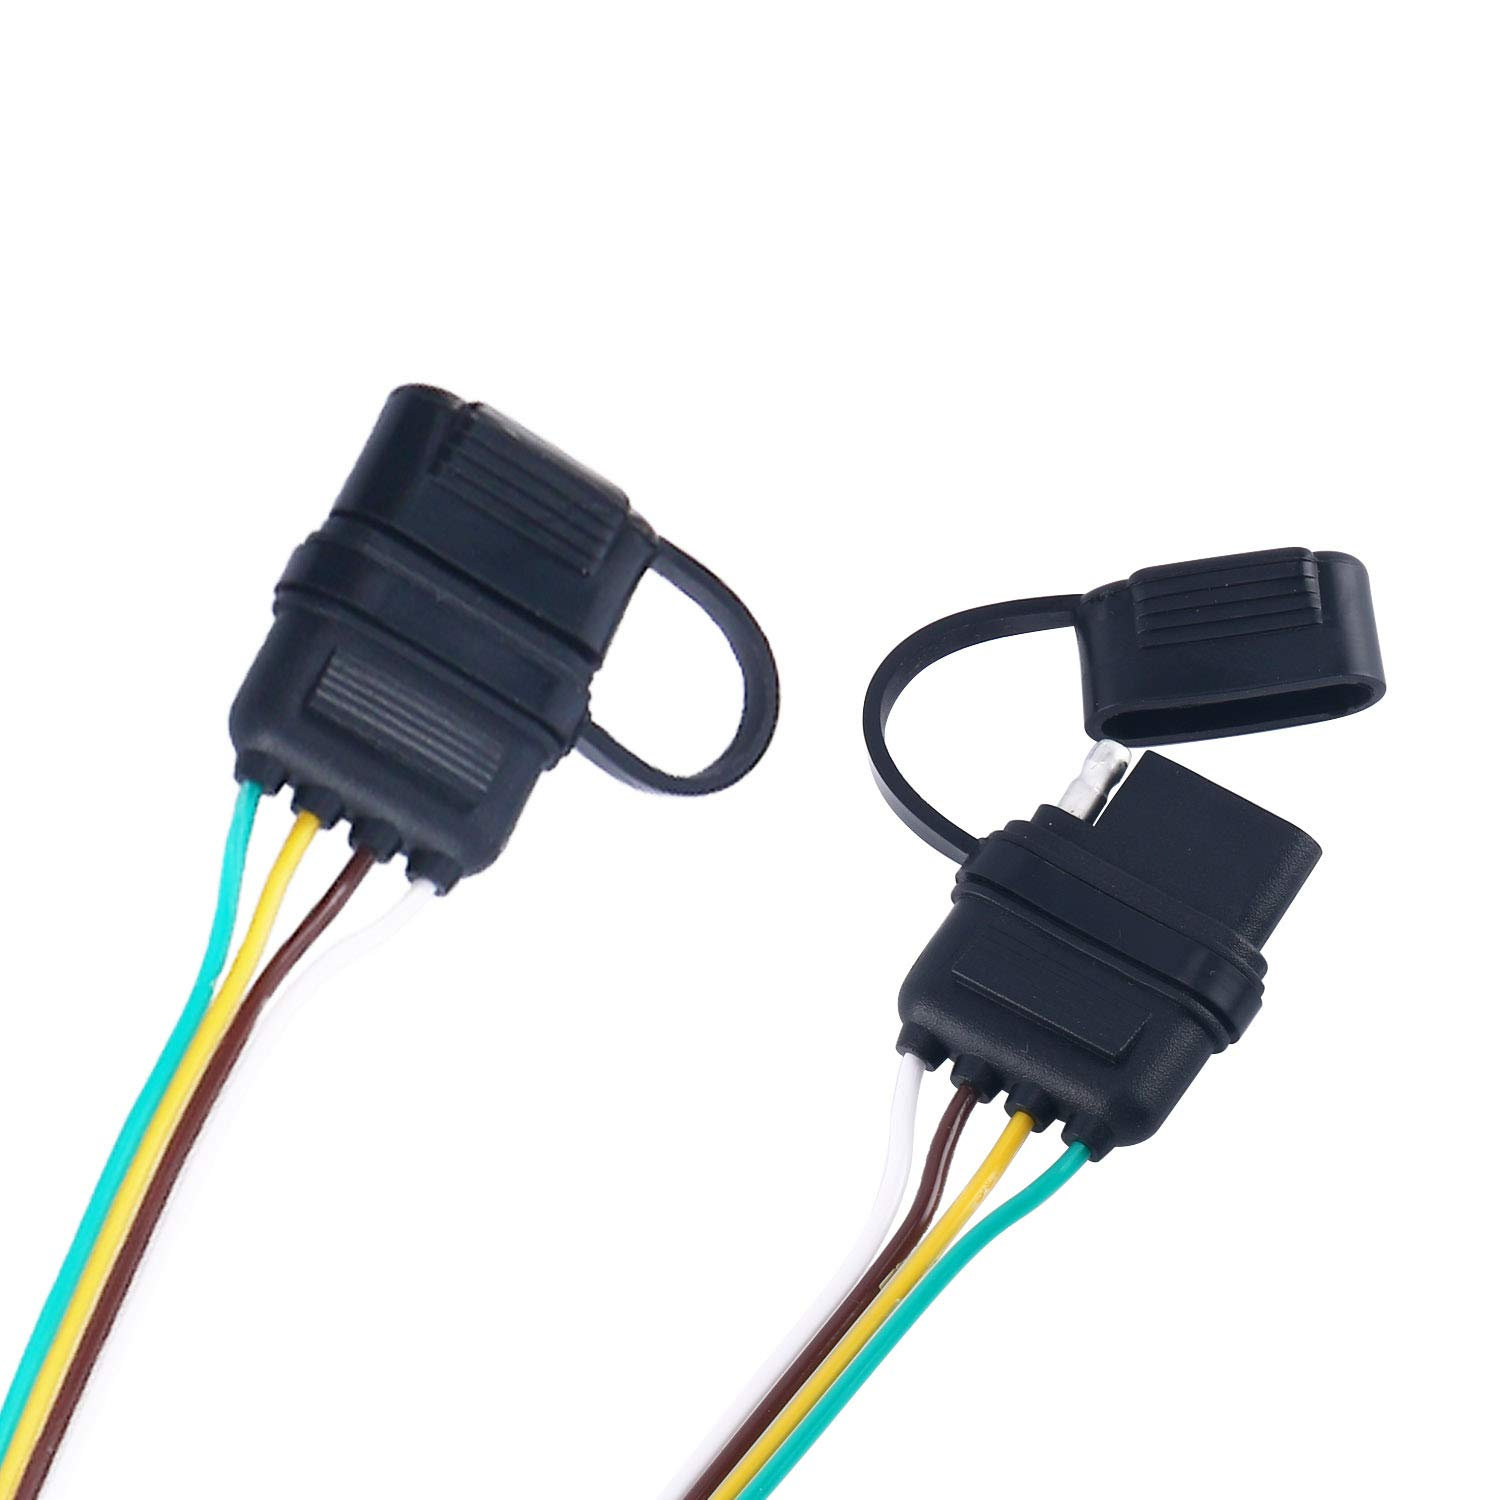 Yaekoo 4 Way Y Splitter Flat Trailer Wire Harness Extension Led Wiring Plug Connector For Tailgate Light